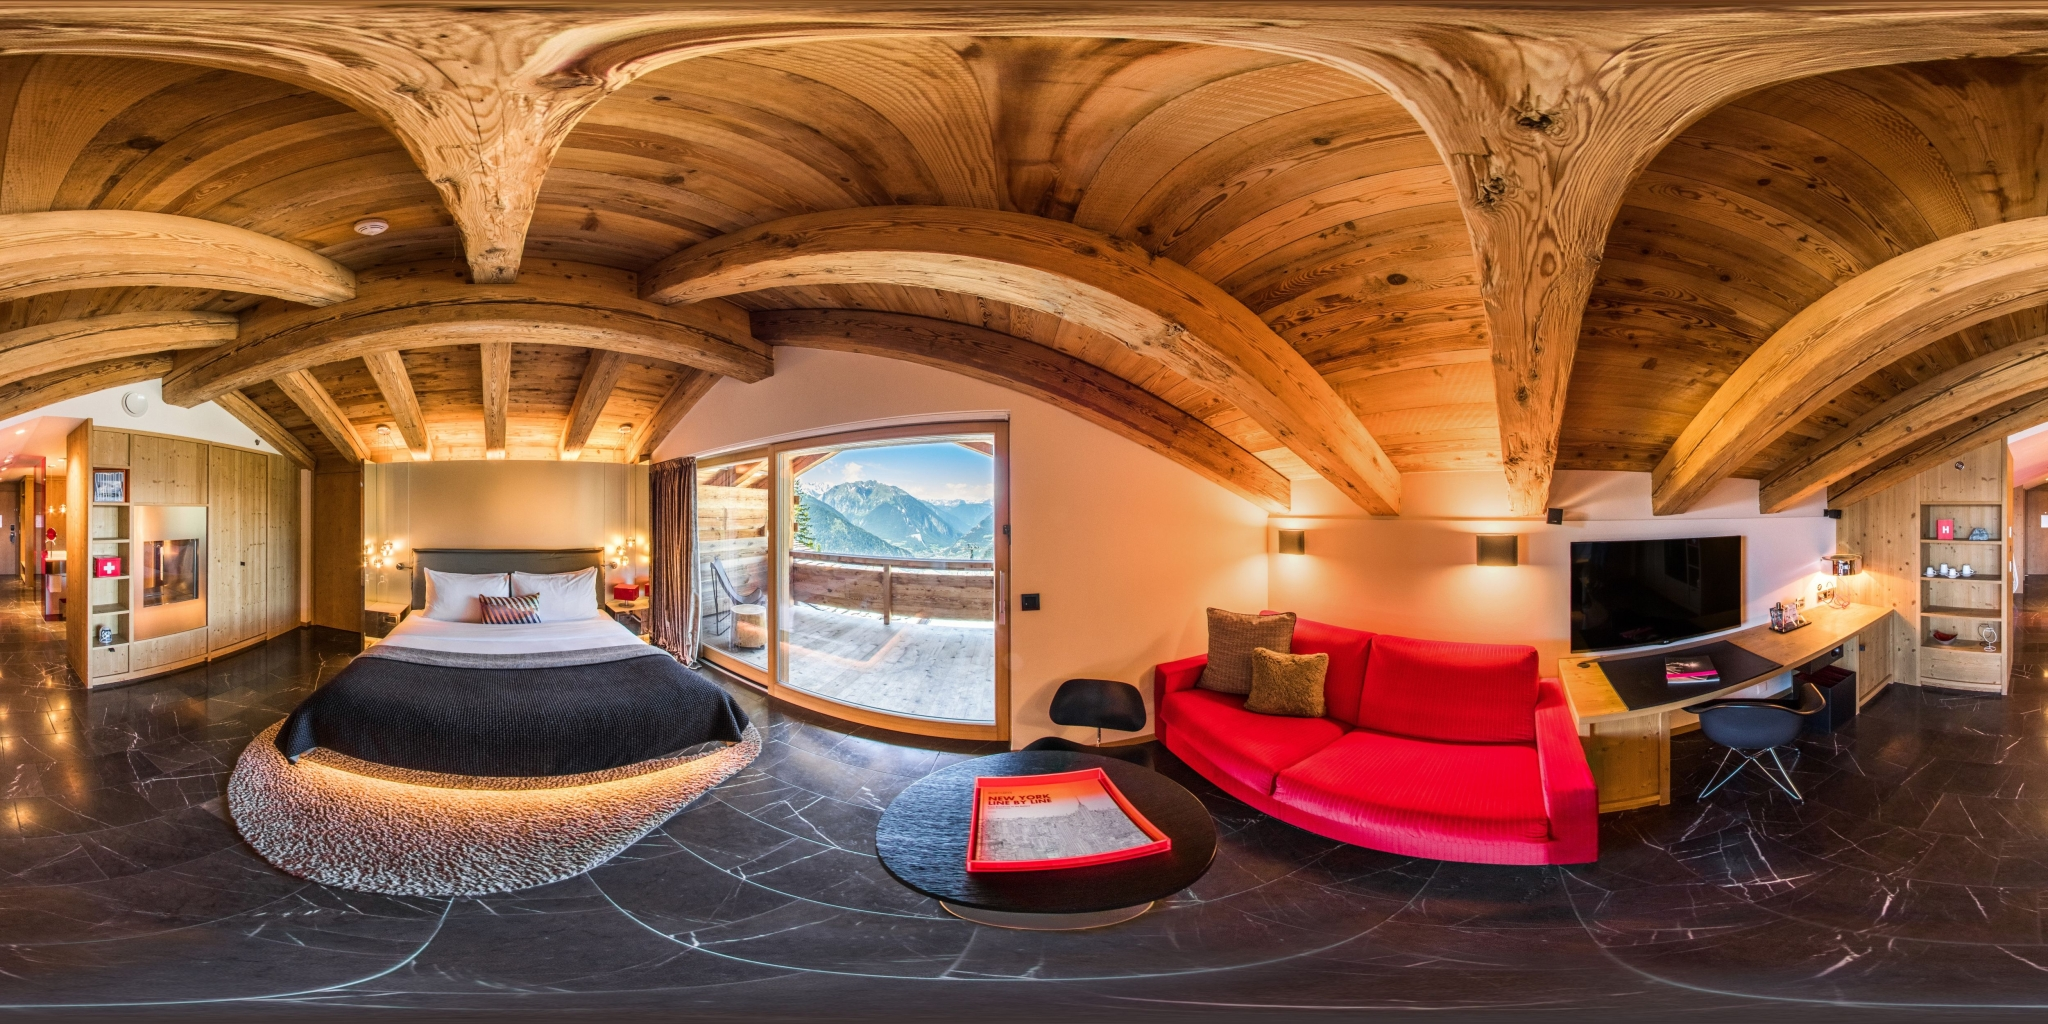 Design Hotel in the Alps